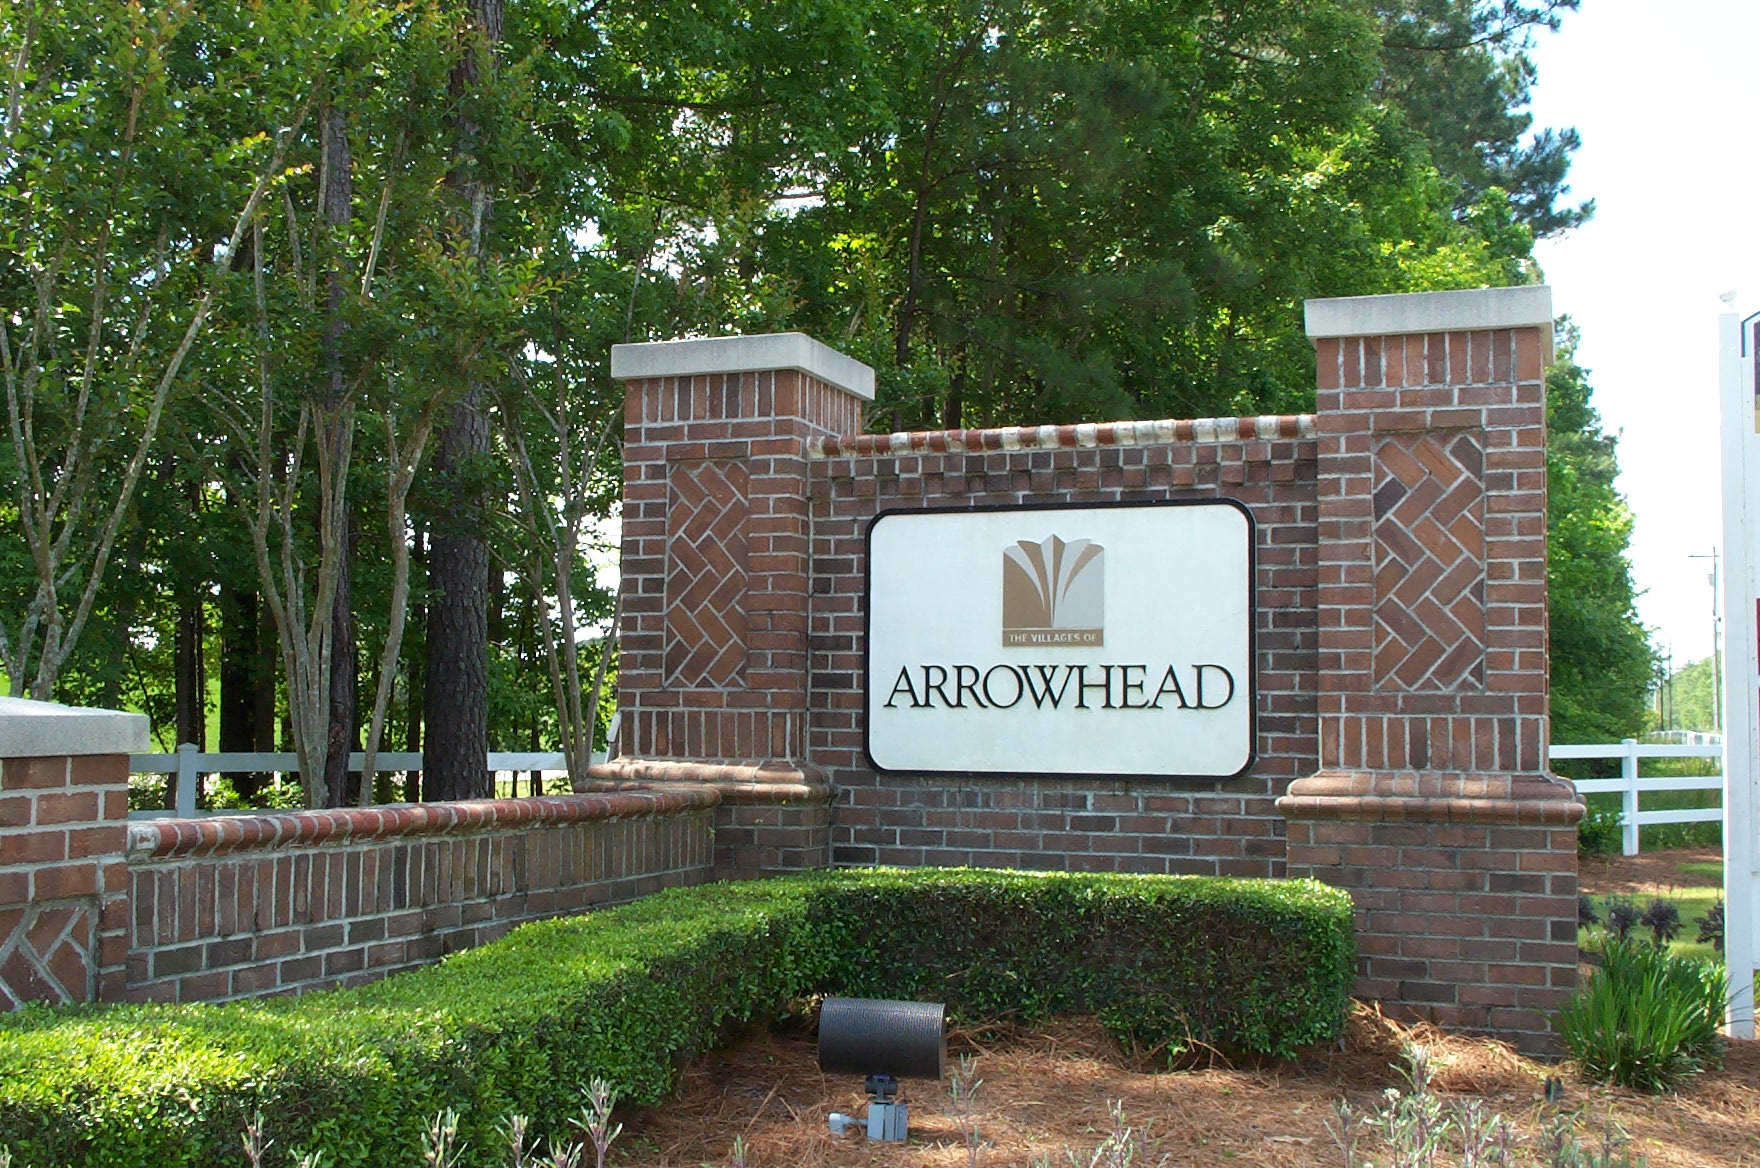 The Villages of Arrowhead - Front Sign